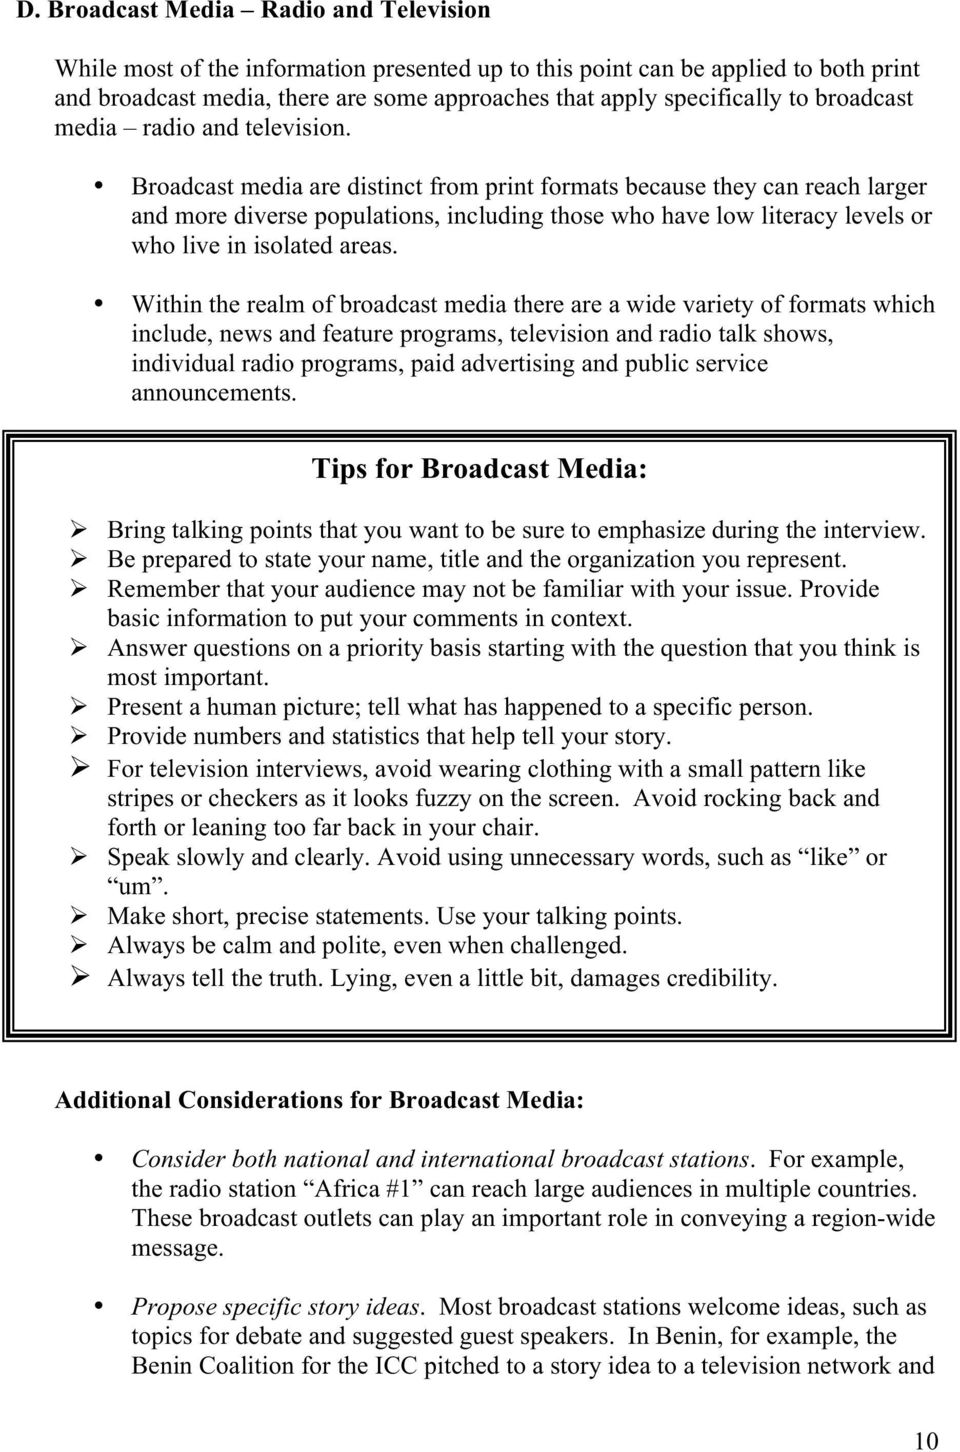 Broadcast media are distinct from print formats because they can reach larger and more diverse populations, including those who have low literacy levels or who live in isolated areas.